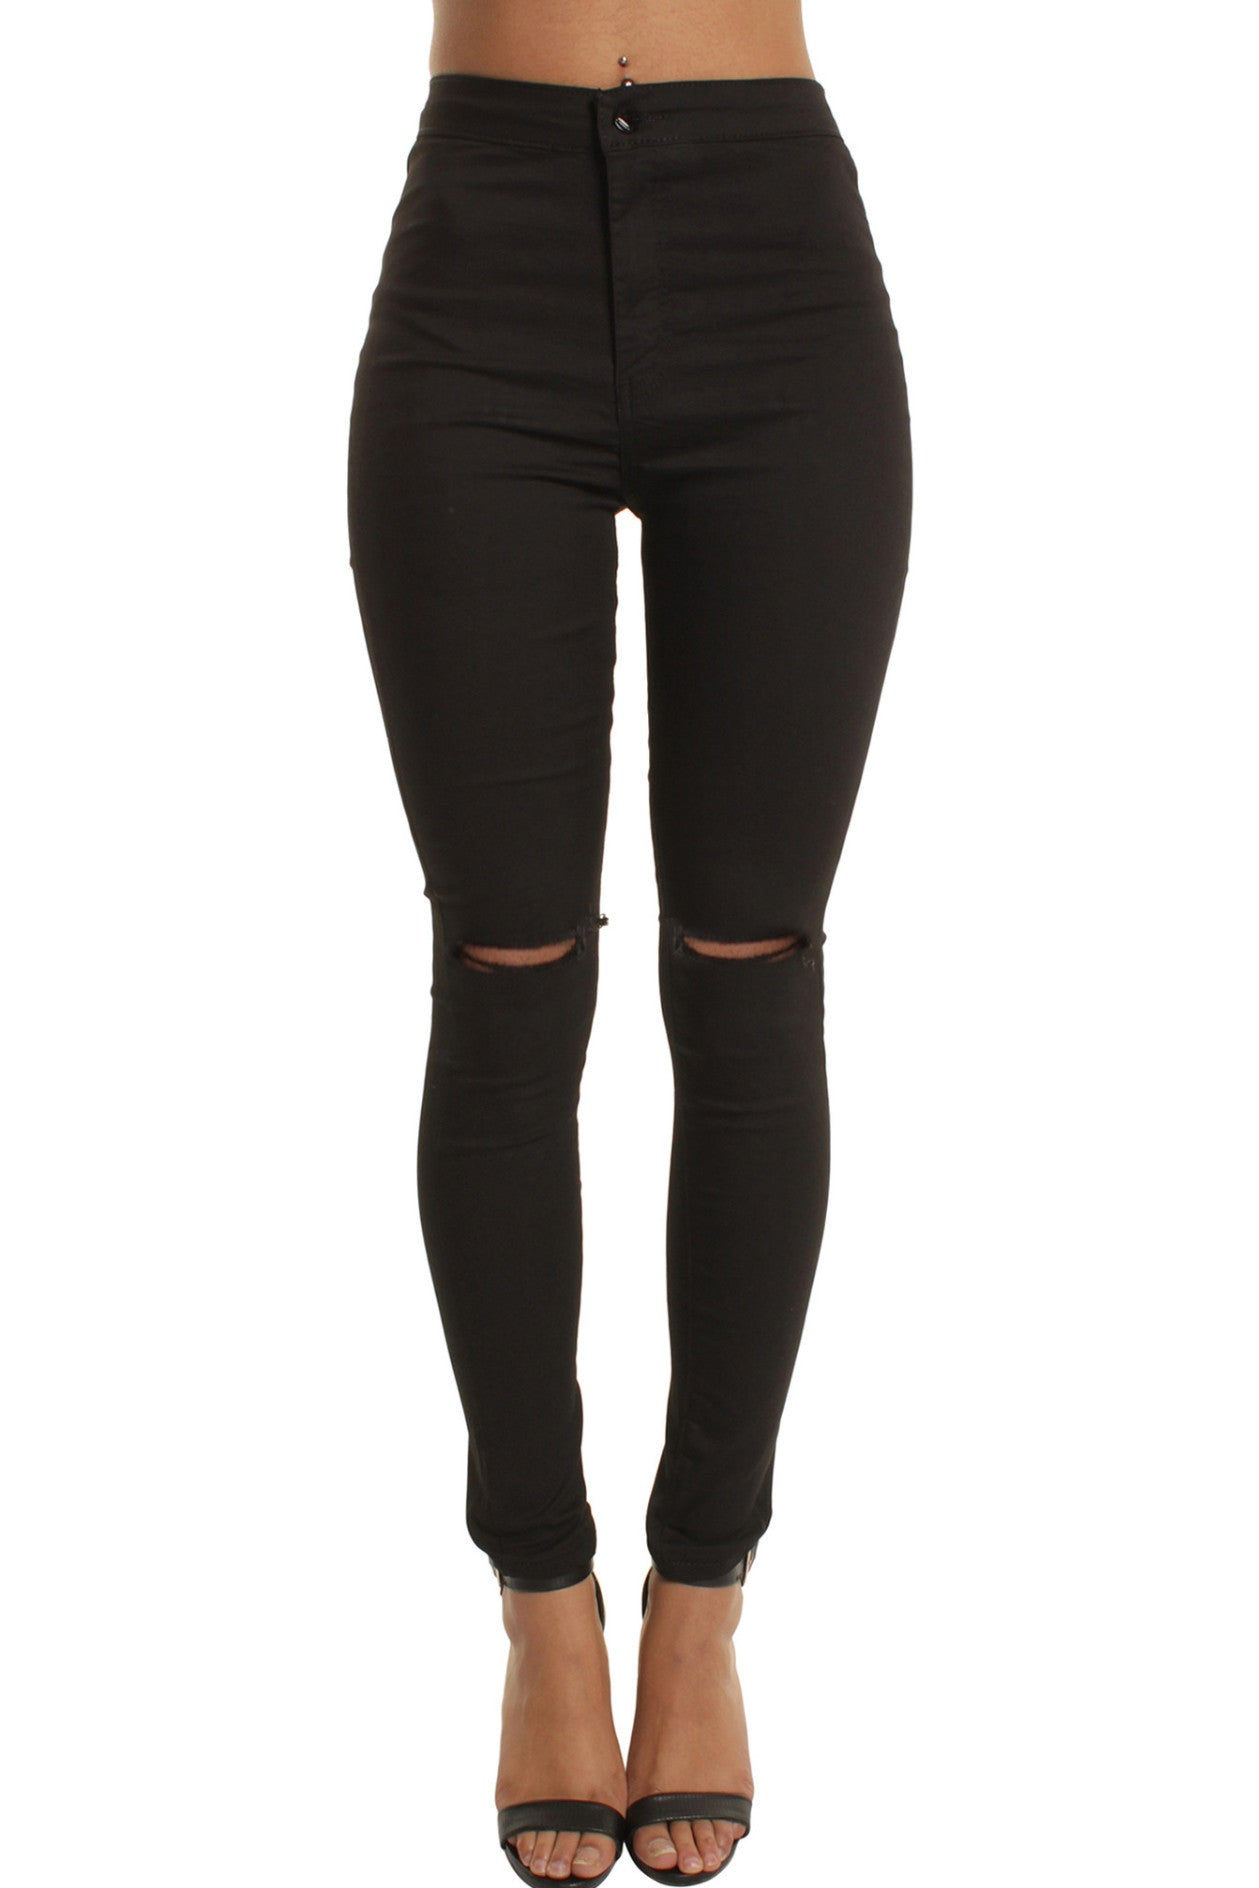 Shop for women's high waisted skinny jeans that feel as good as they look at American Eagle. Visit online for all styles, fits and additional sizes today! t Level Stretch Ripped Jeans Moto Jeans Patched Jeans Light Wash Jeans Medium Wash Jeans Dark Wash Jeans Acid Wash Jeans Black Jeans Colored Jeans Non Stretch Jeans.